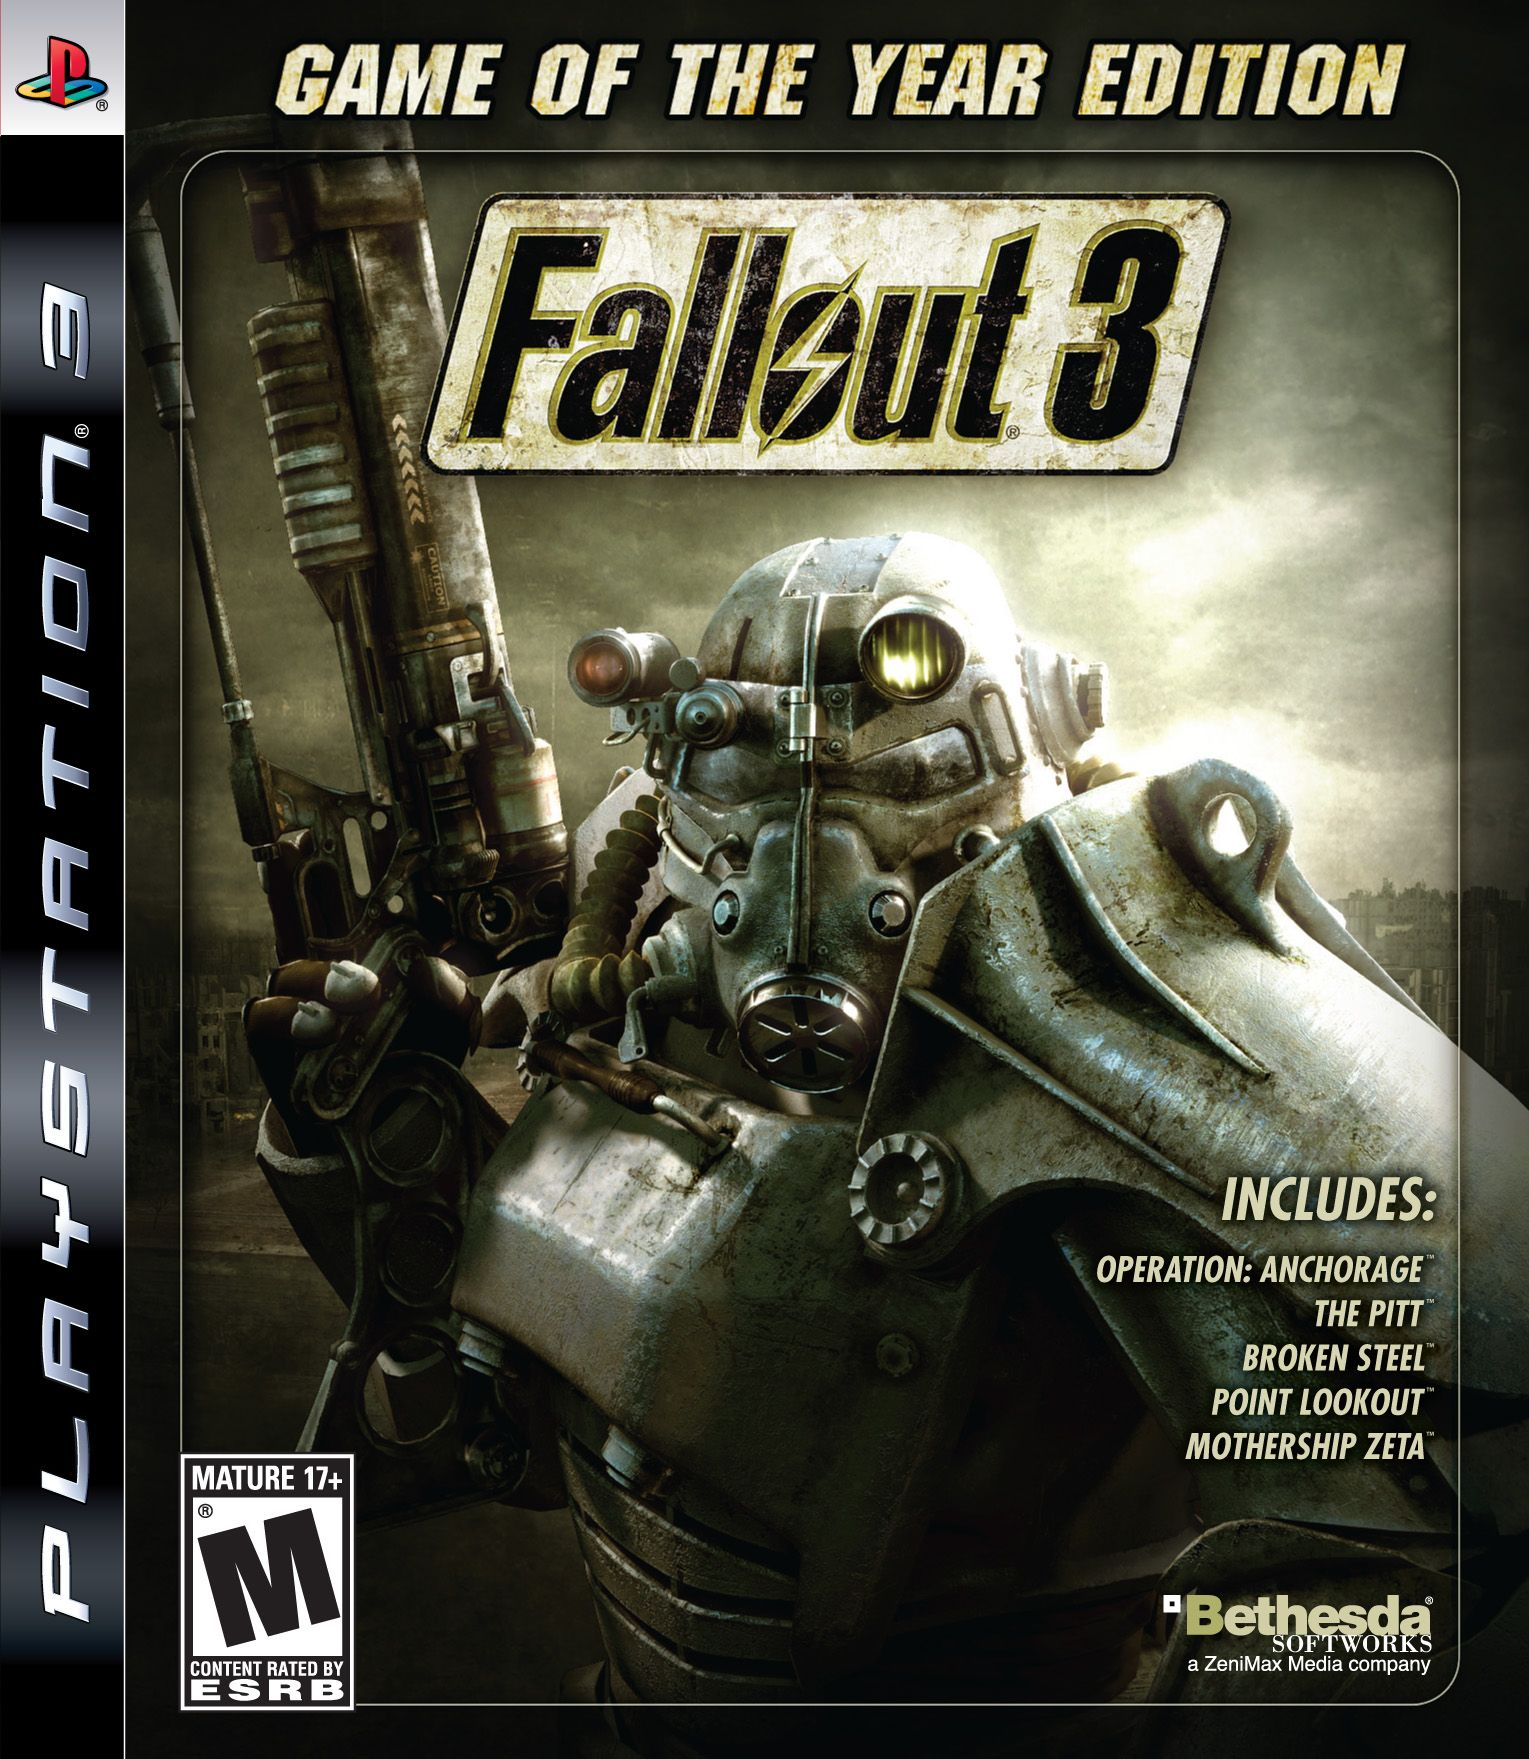 One Of The Best Games Iv Ever Played This Is The Game That Got Me Into Gaming Loved It The Love It Now 10 10 Xbox 360 Games Video Games Pc Fallout Game